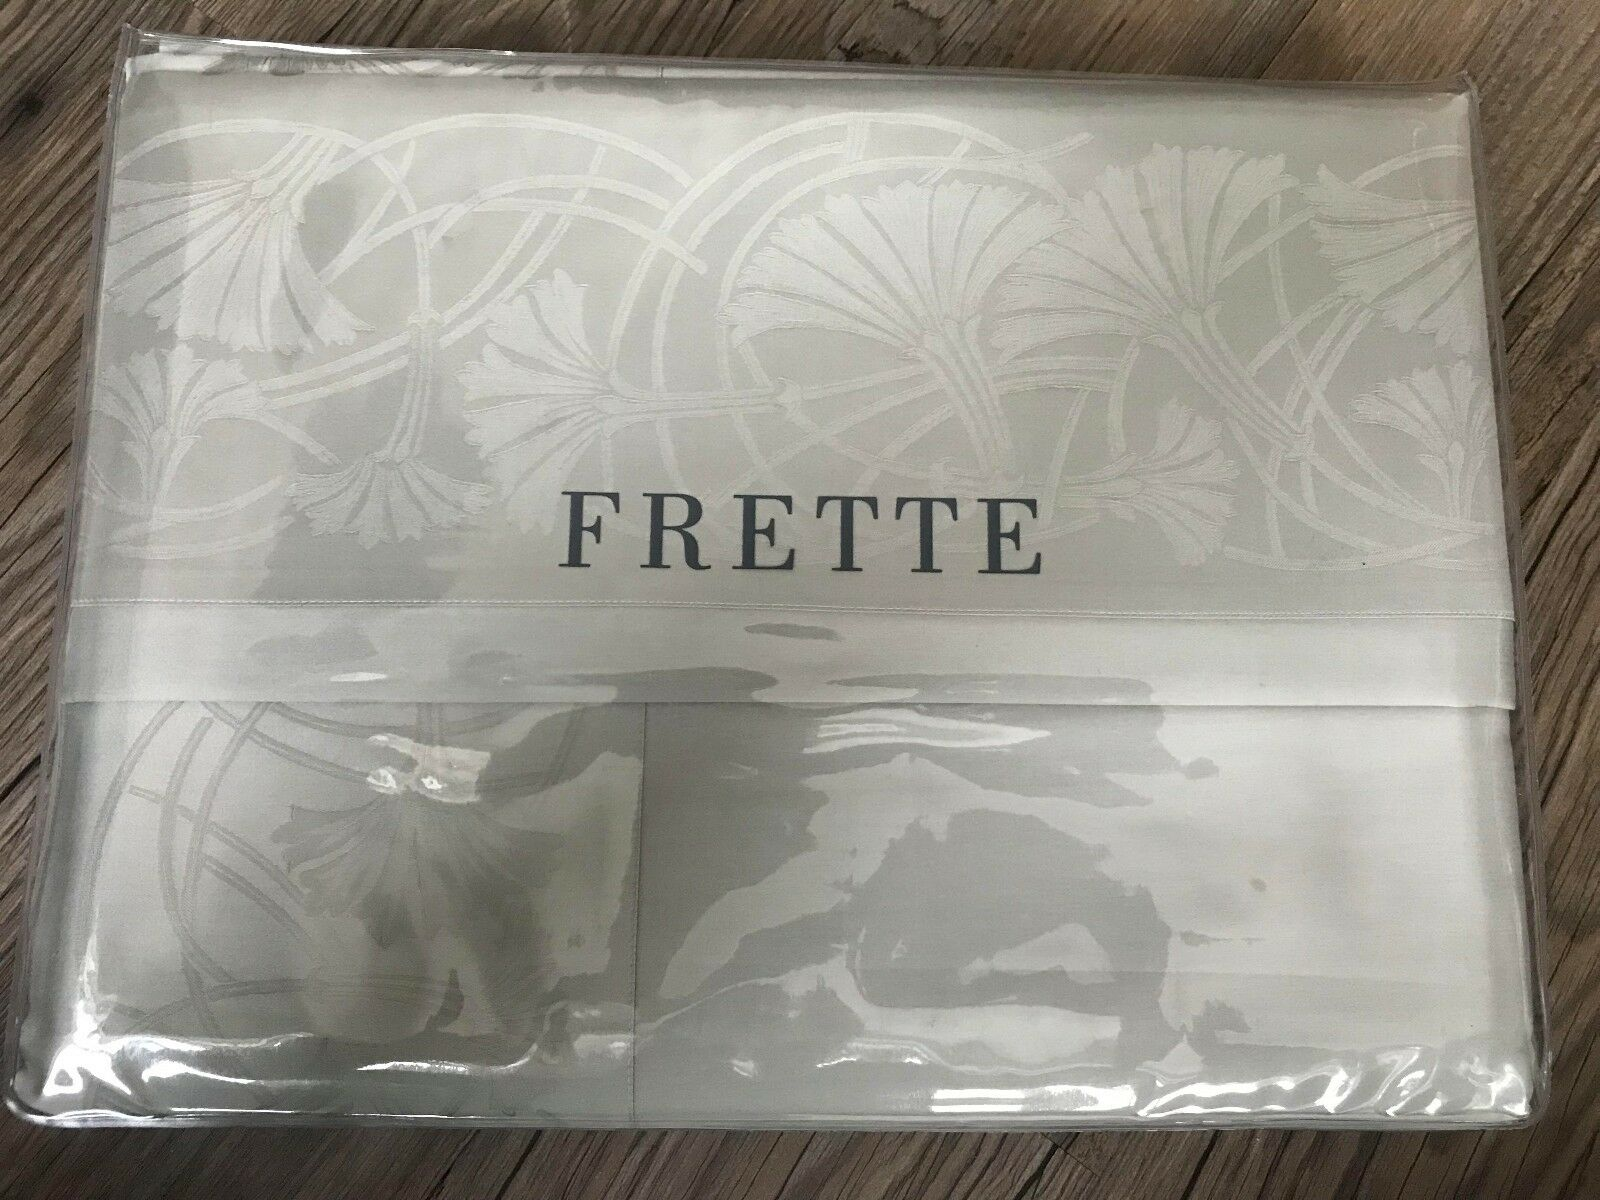 1,350 - FRETTE Couture LIBERTY Khaki Beige KING SHEET SET - FINAL SALE